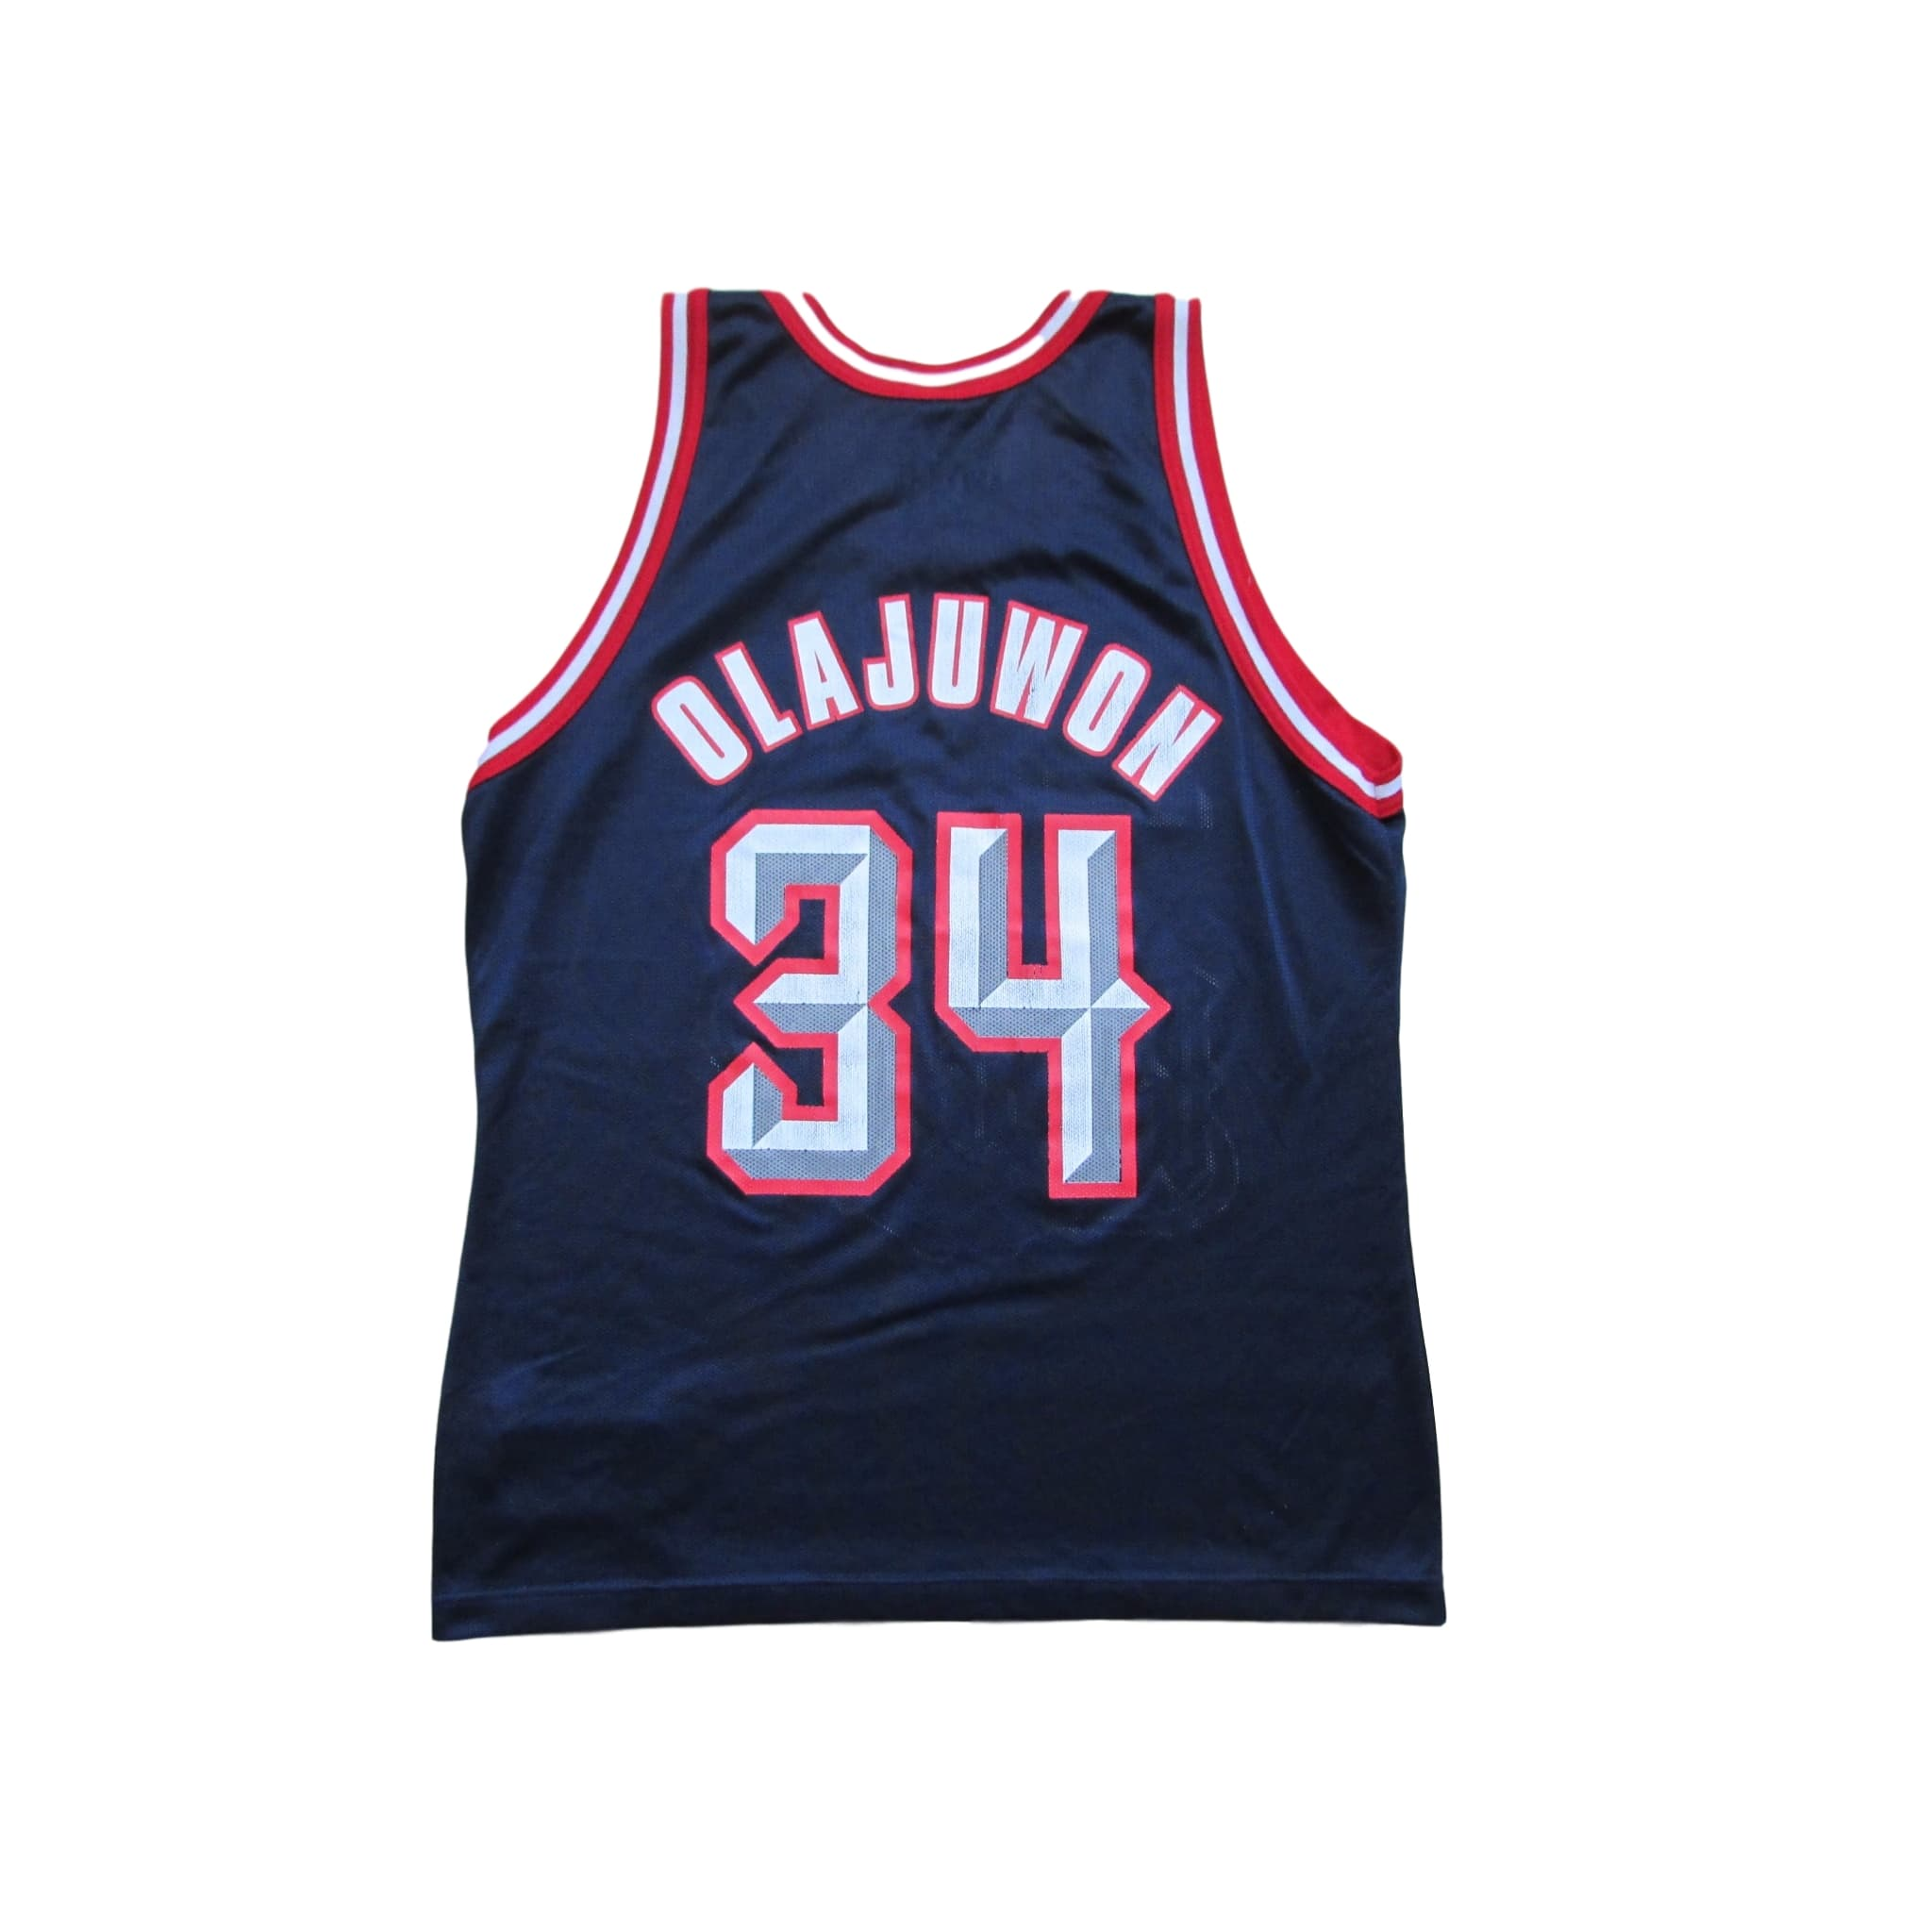 Houston Rockets Hakeem Olajuwon Basketball Jersey 1994 Champion Sz 44